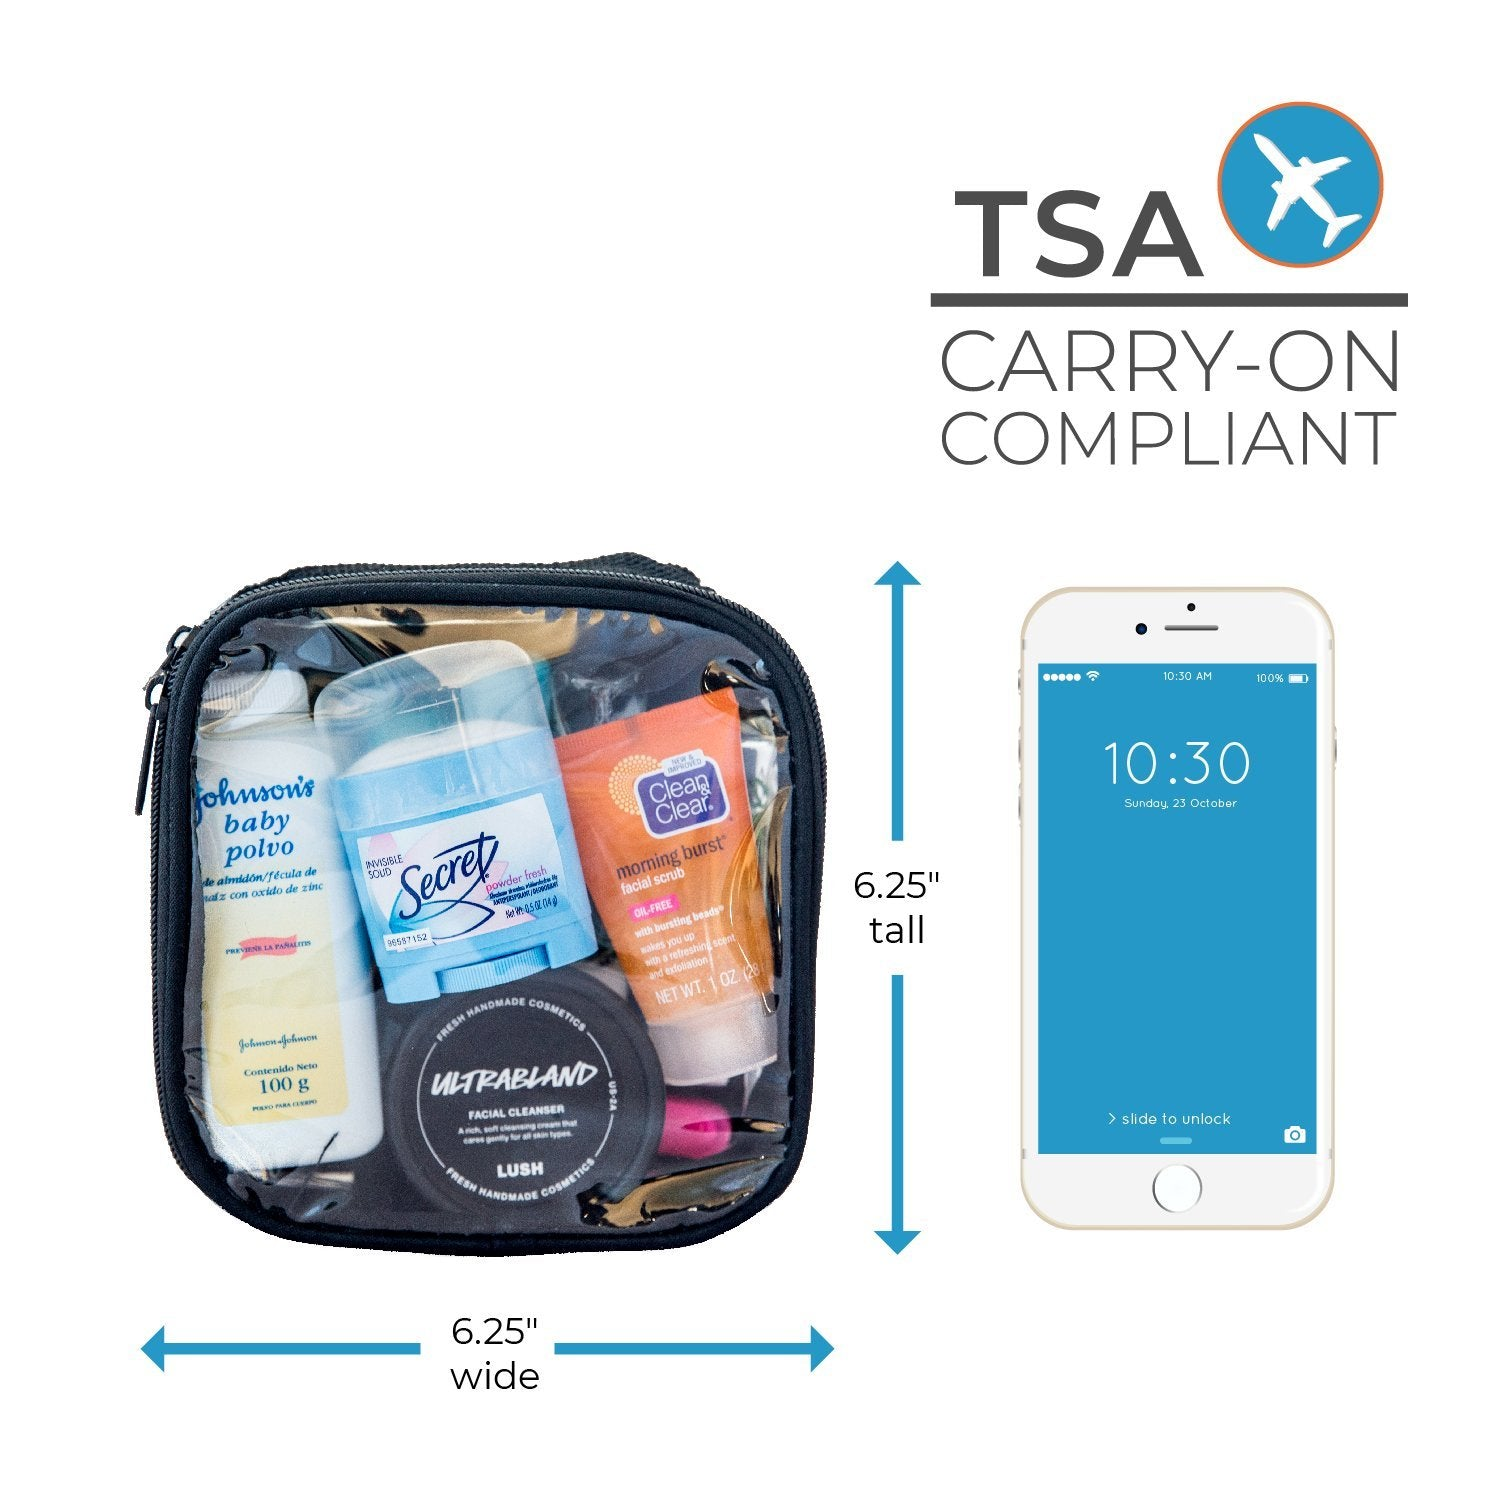 tsa carry on compliant